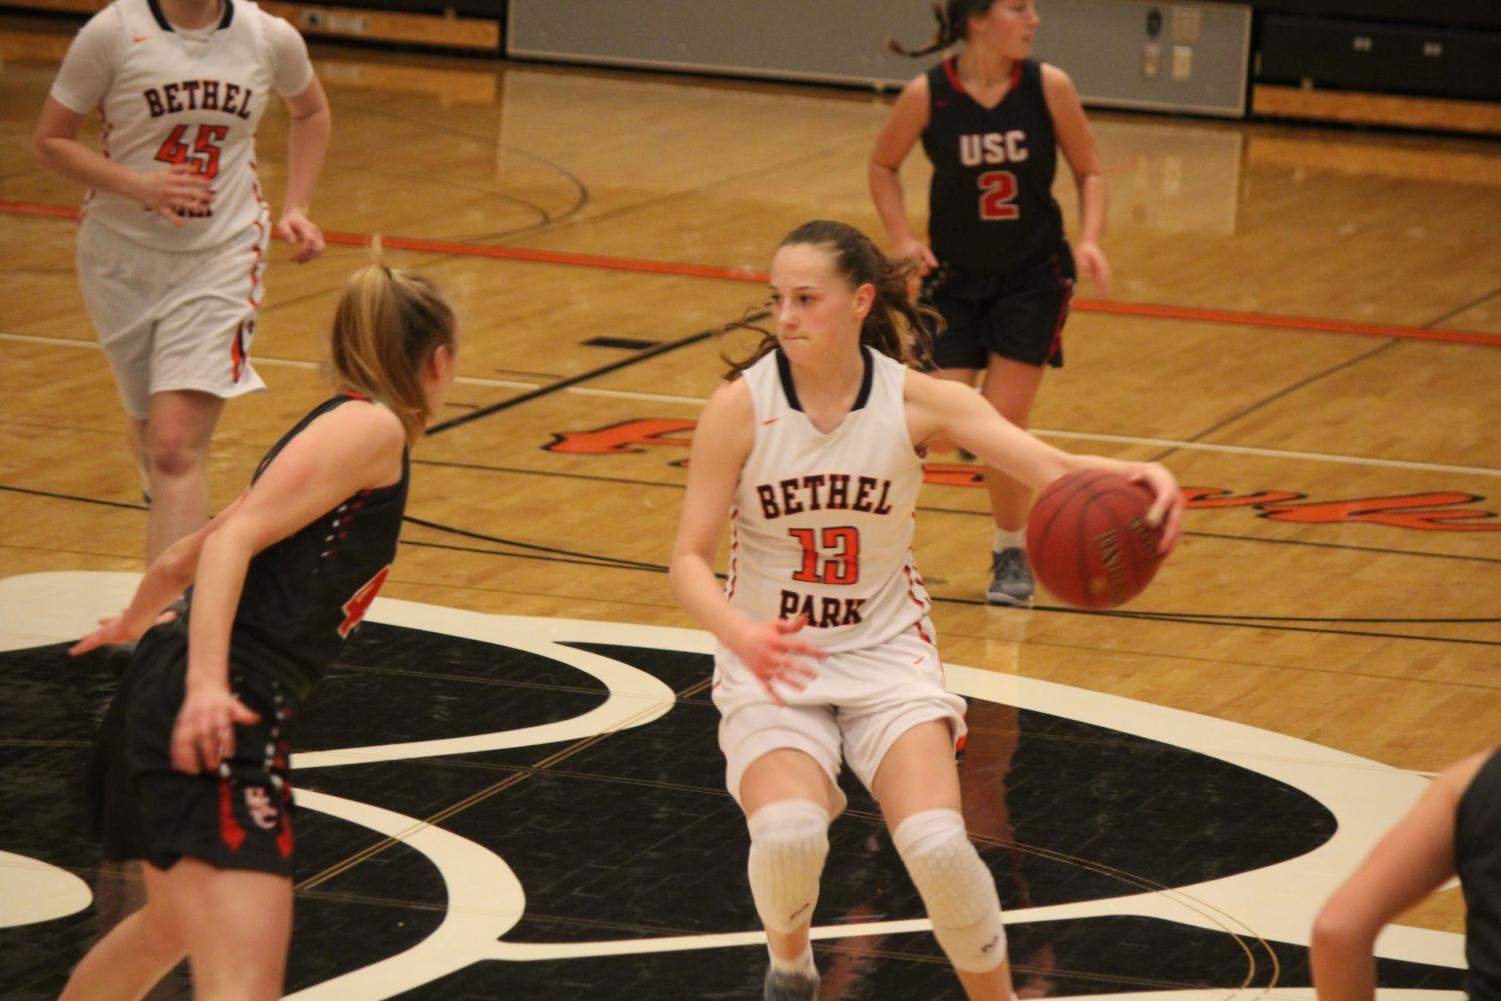 Maddie Dziezgowski weighs her options in the Lady Hawks' game vs. USC on Jan. 25.